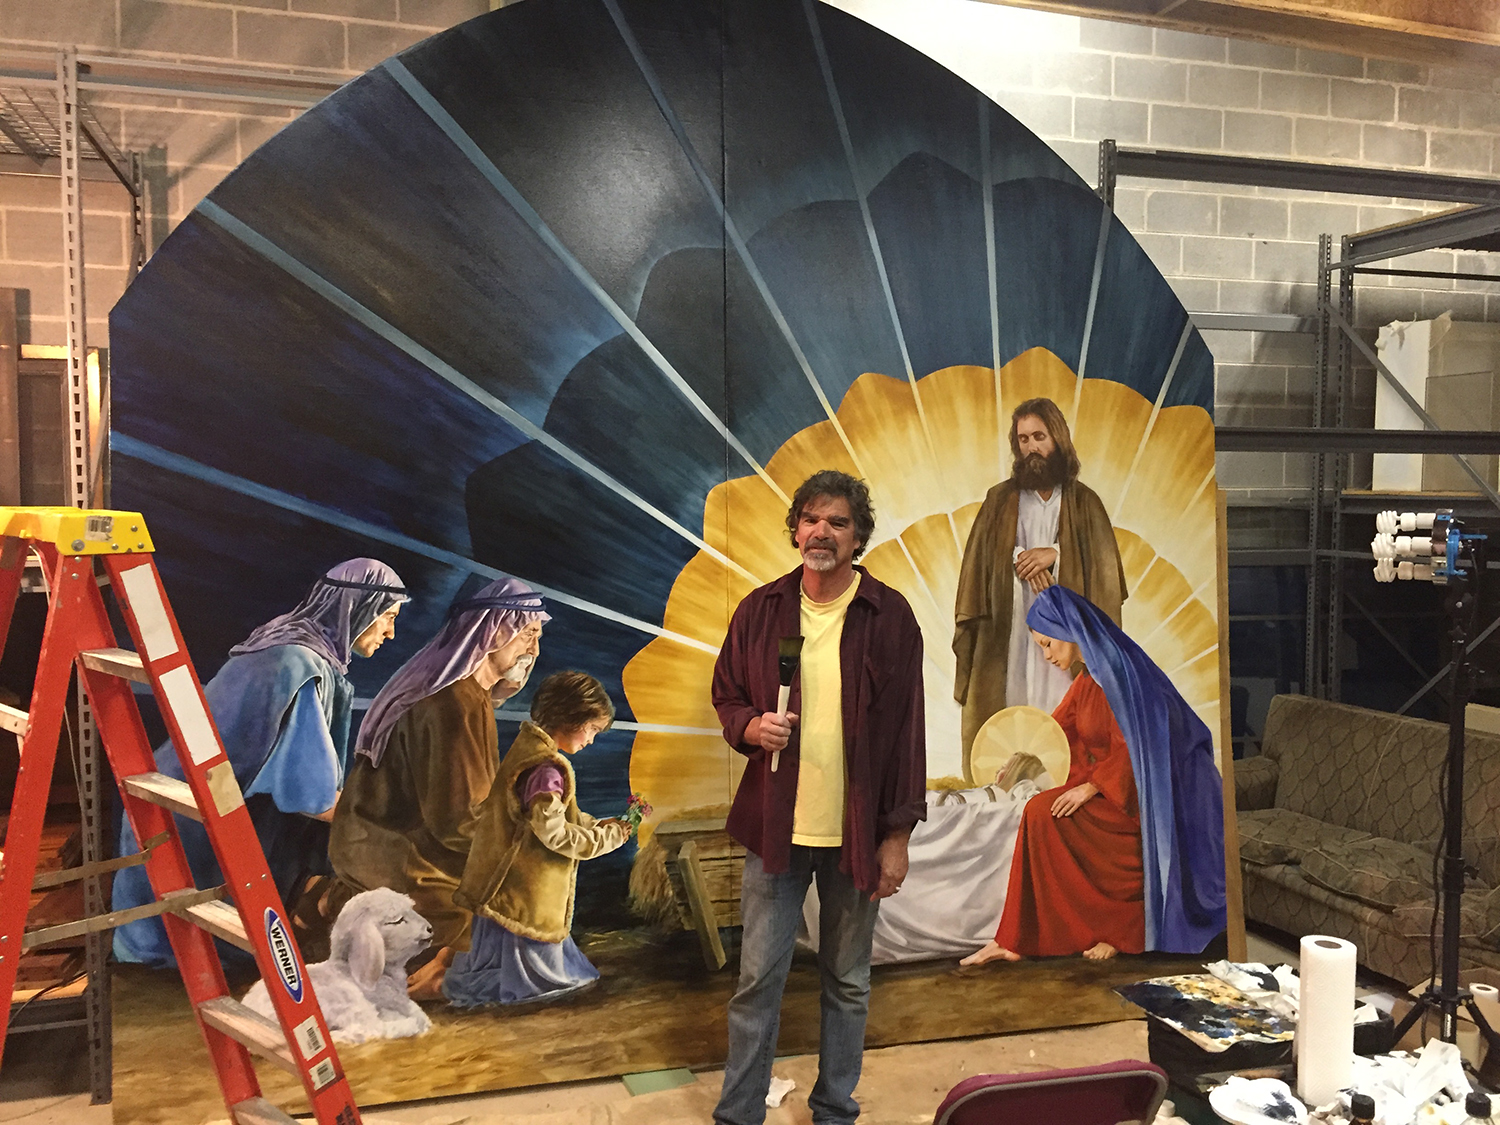 Bryn Athyn artist Edwin Herder with his nearly-completed, life-size painting of the Adoration of the Shepherds. The painting can be seen in Glencairn's Upper Hall throughout the holiday season.